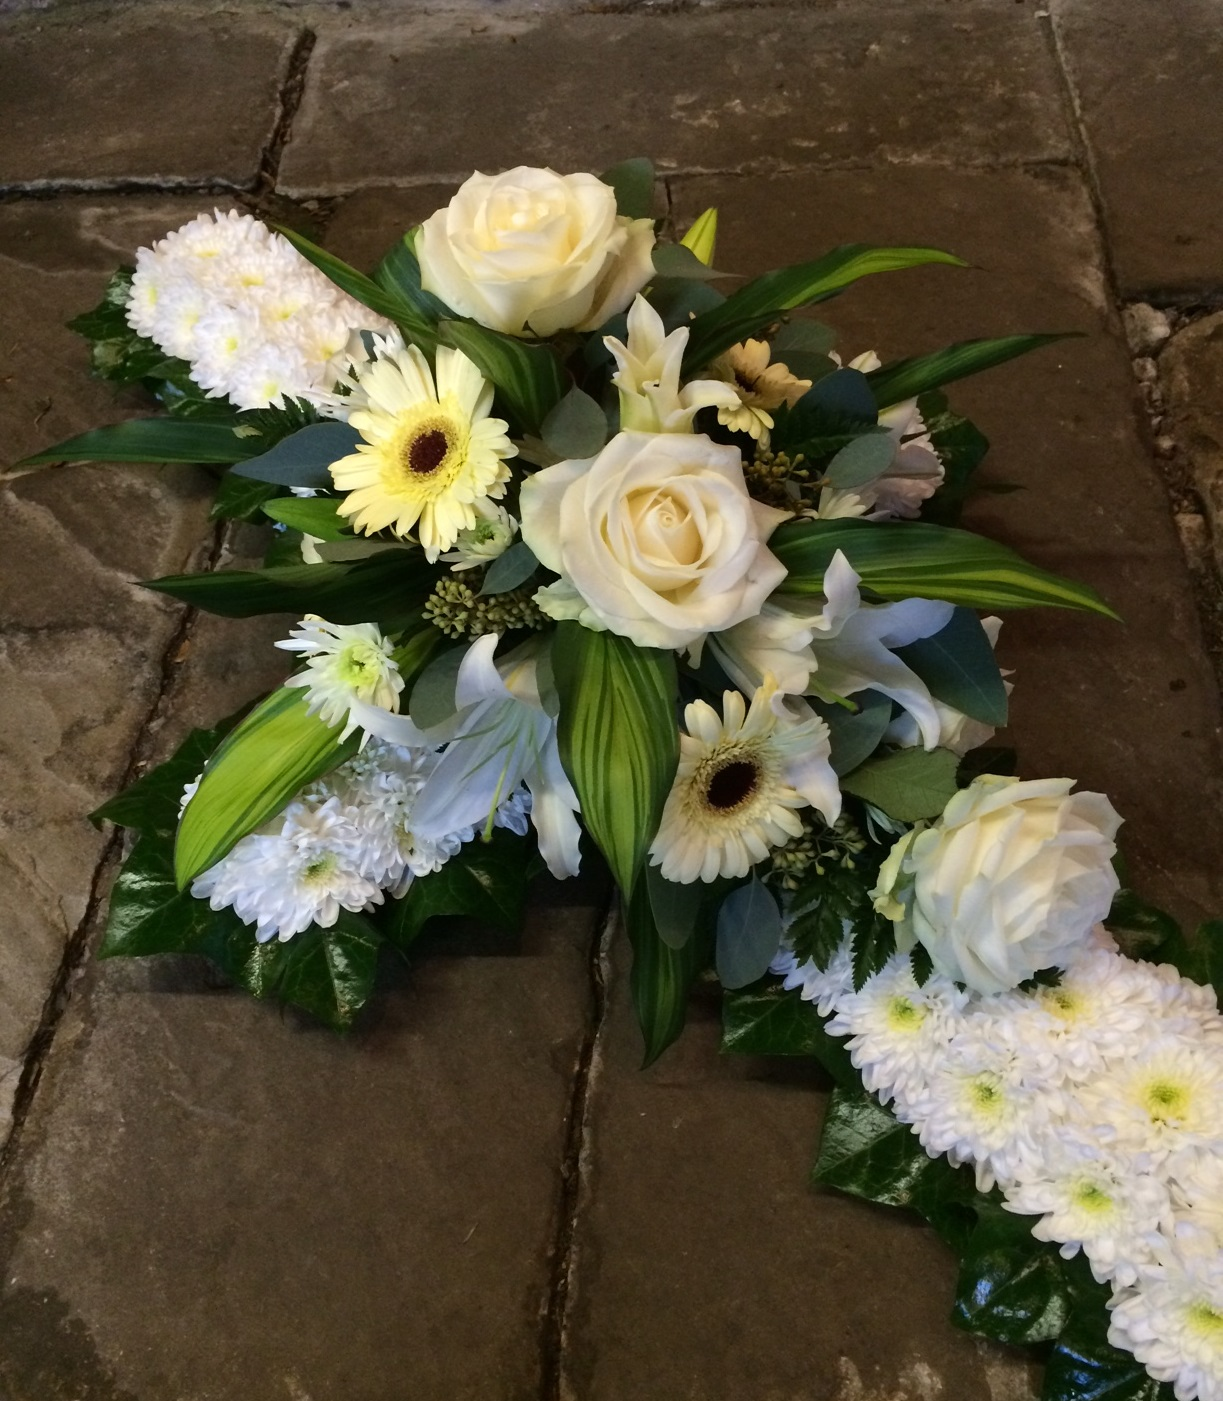 Funeral flowers and floral tributes in hindley green wigan funeral flowers rainbow izmirmasajfo Image collections